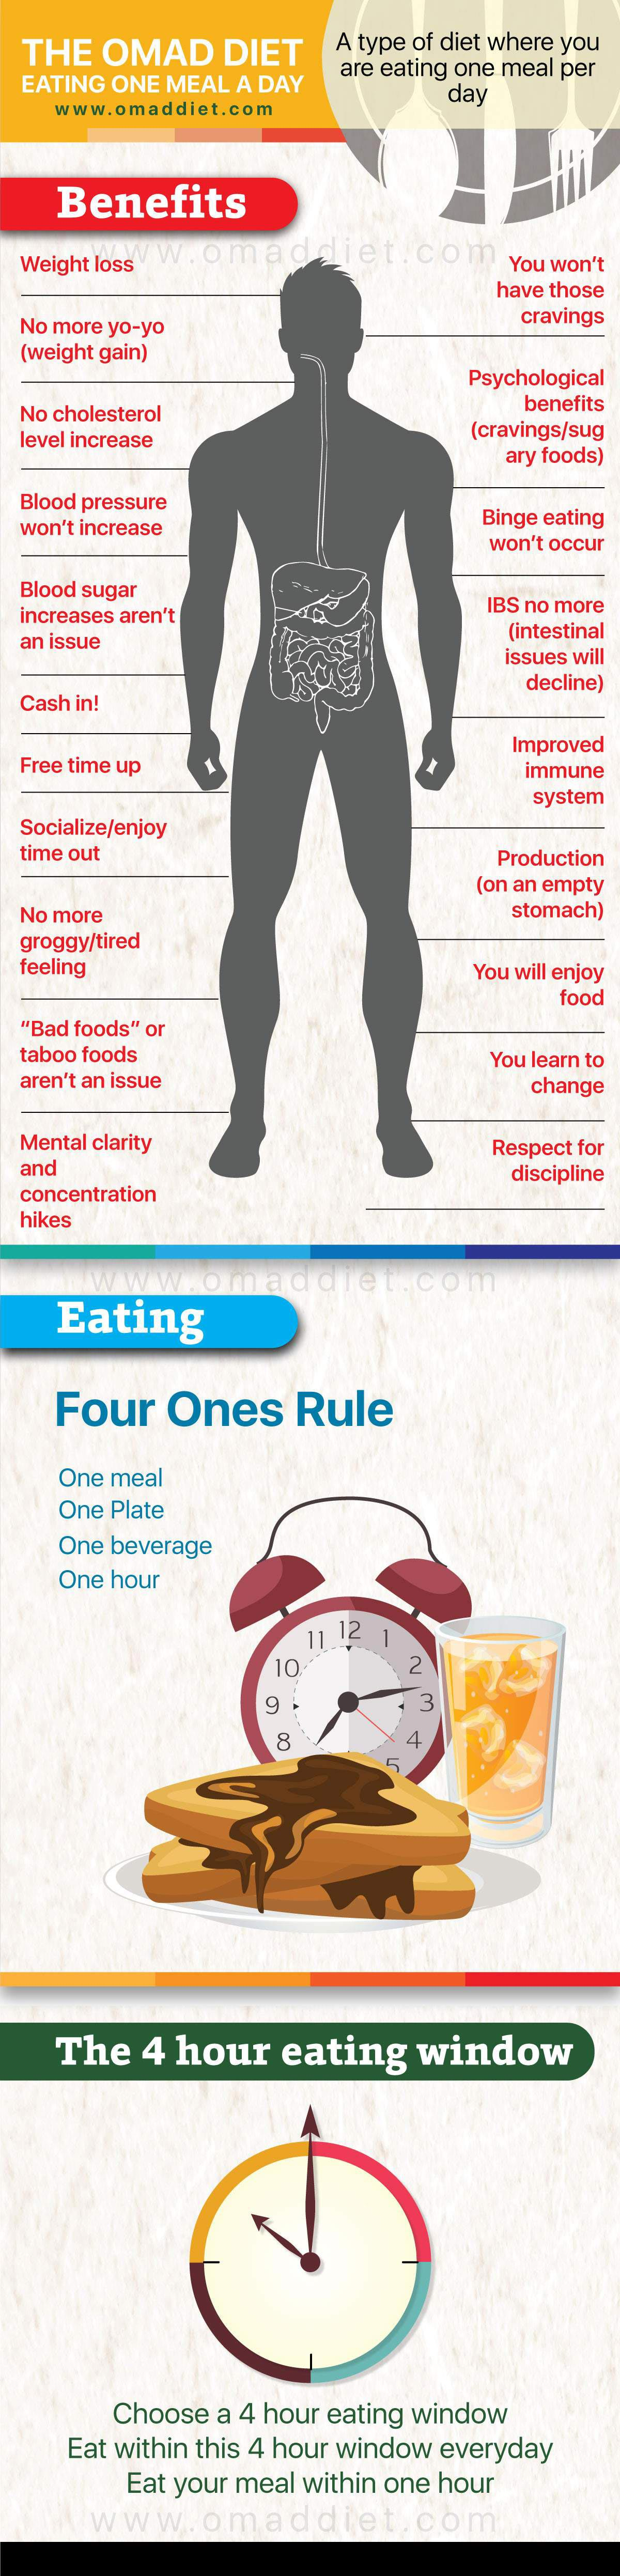 What to eat and drink to lose weight quickly